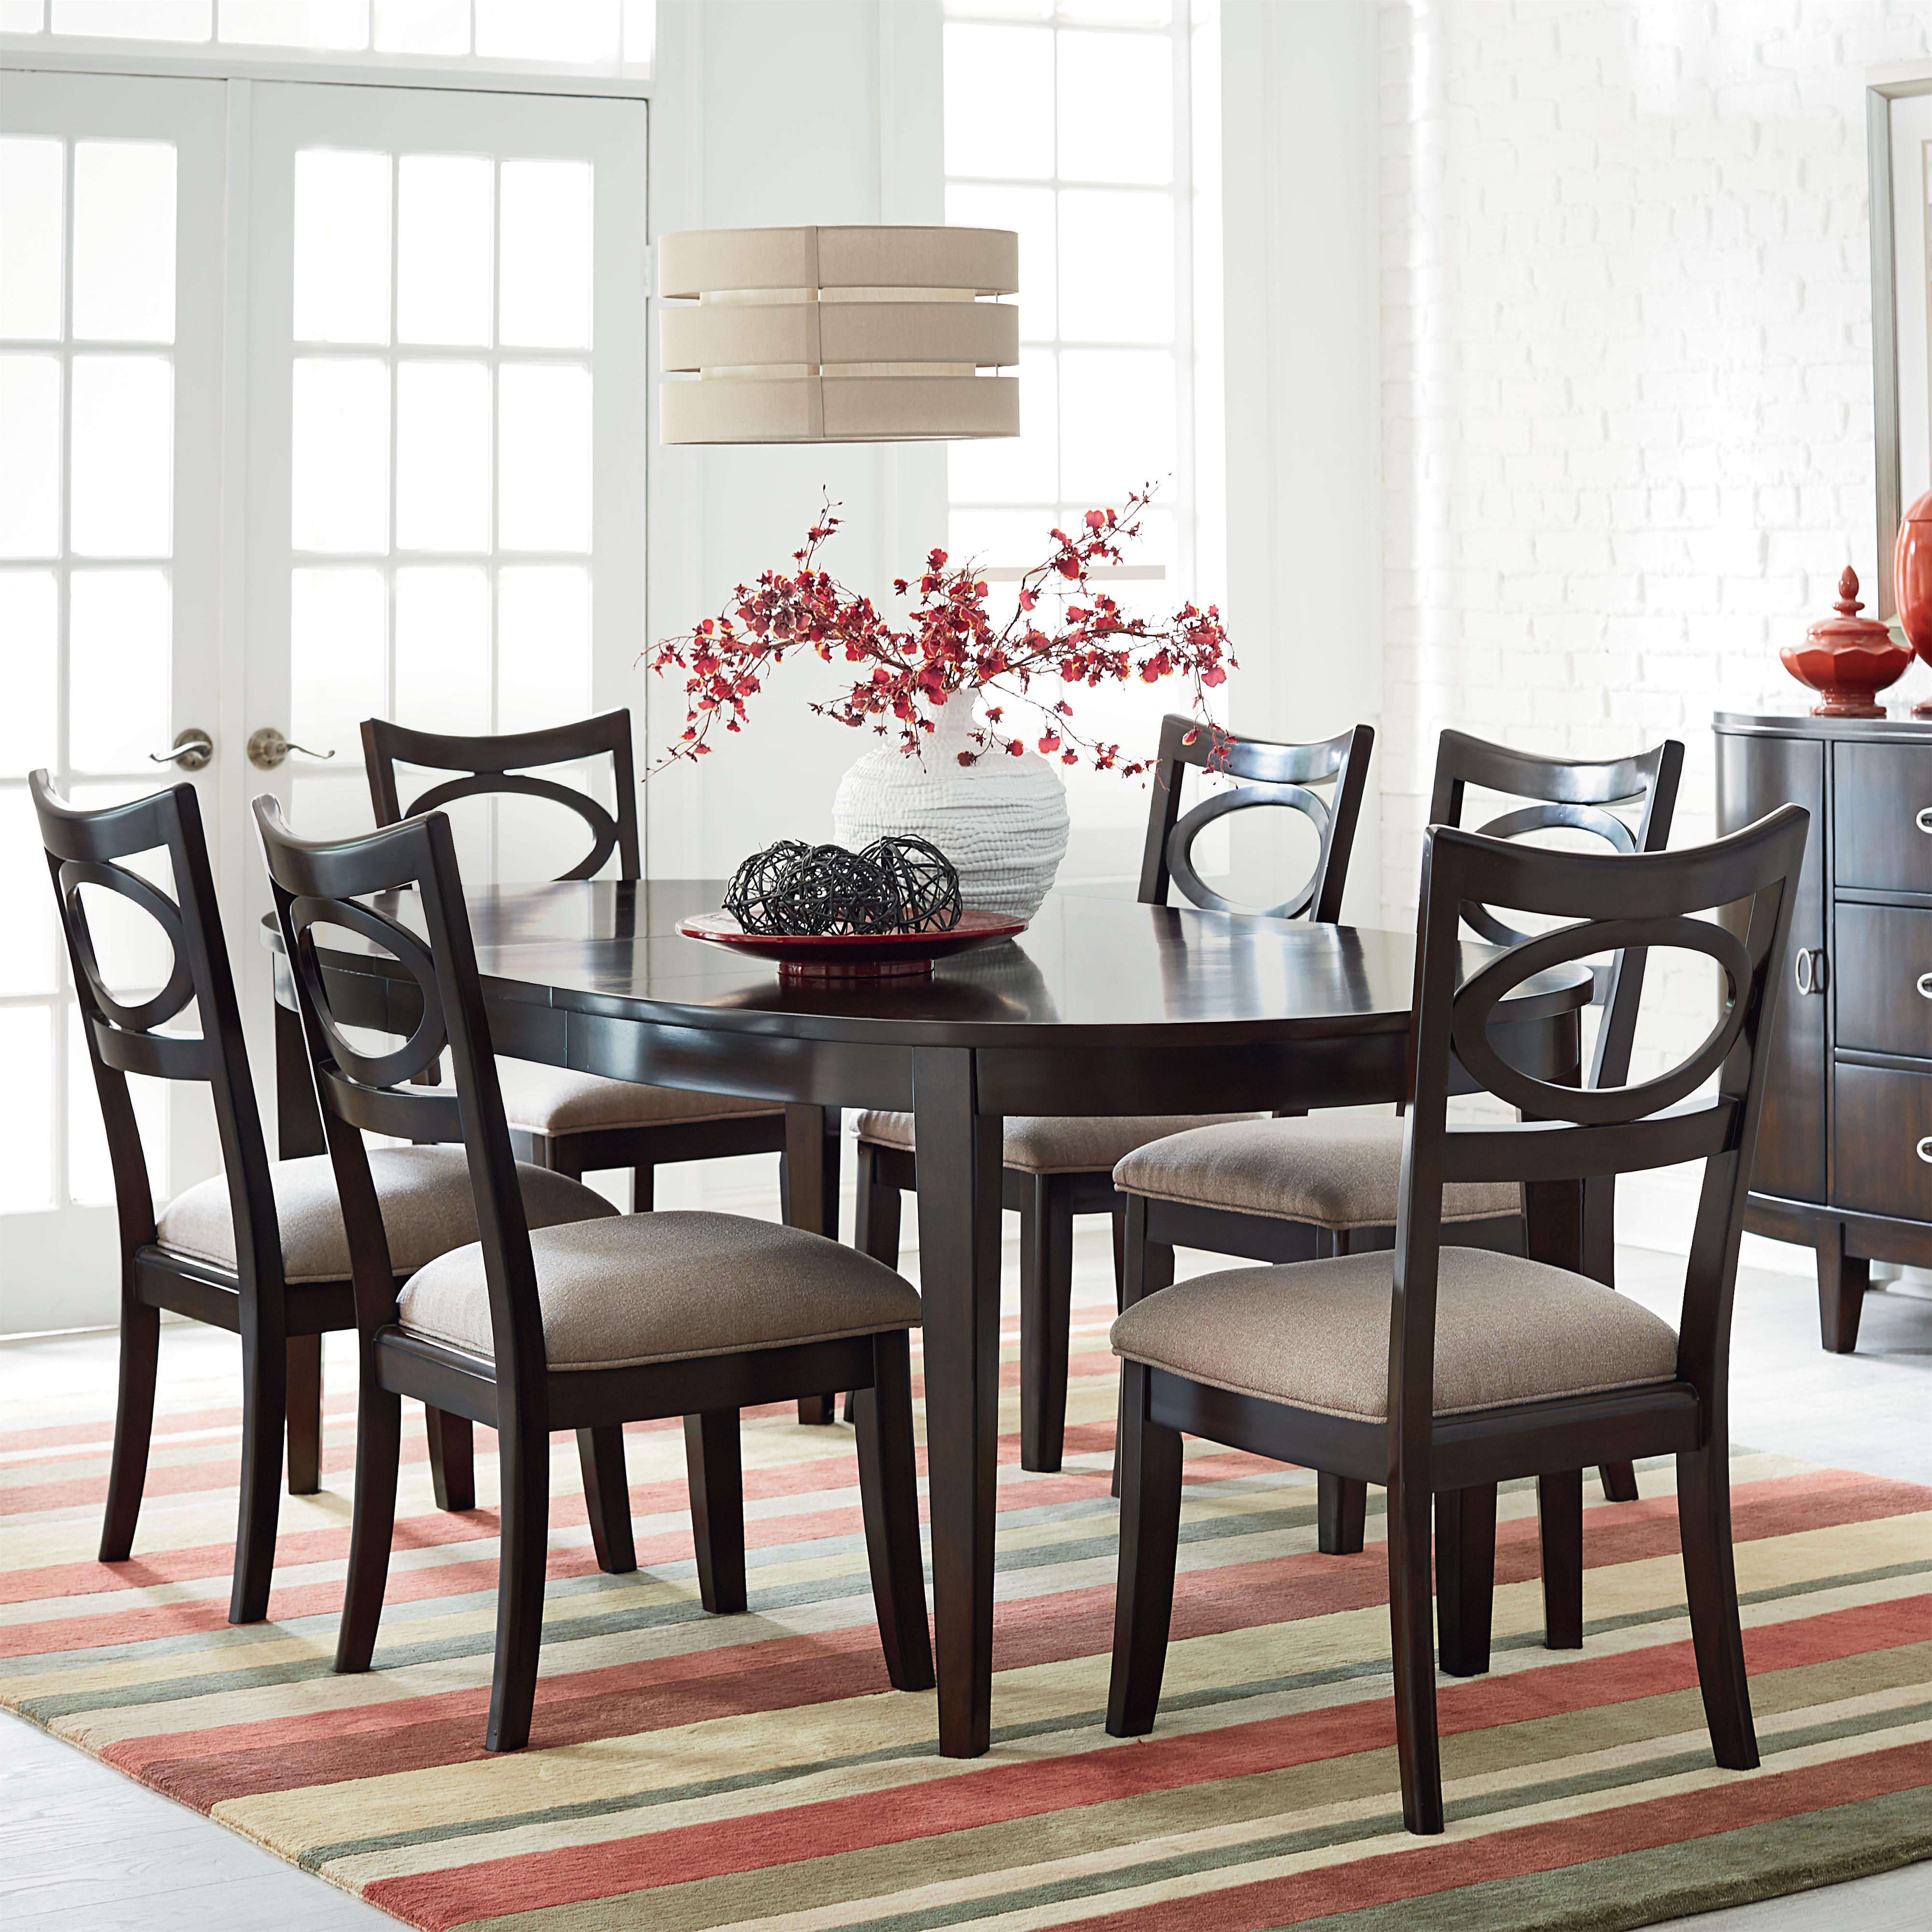 chair set omaha chairs and dining room furniture standard grey st upholstered bench w